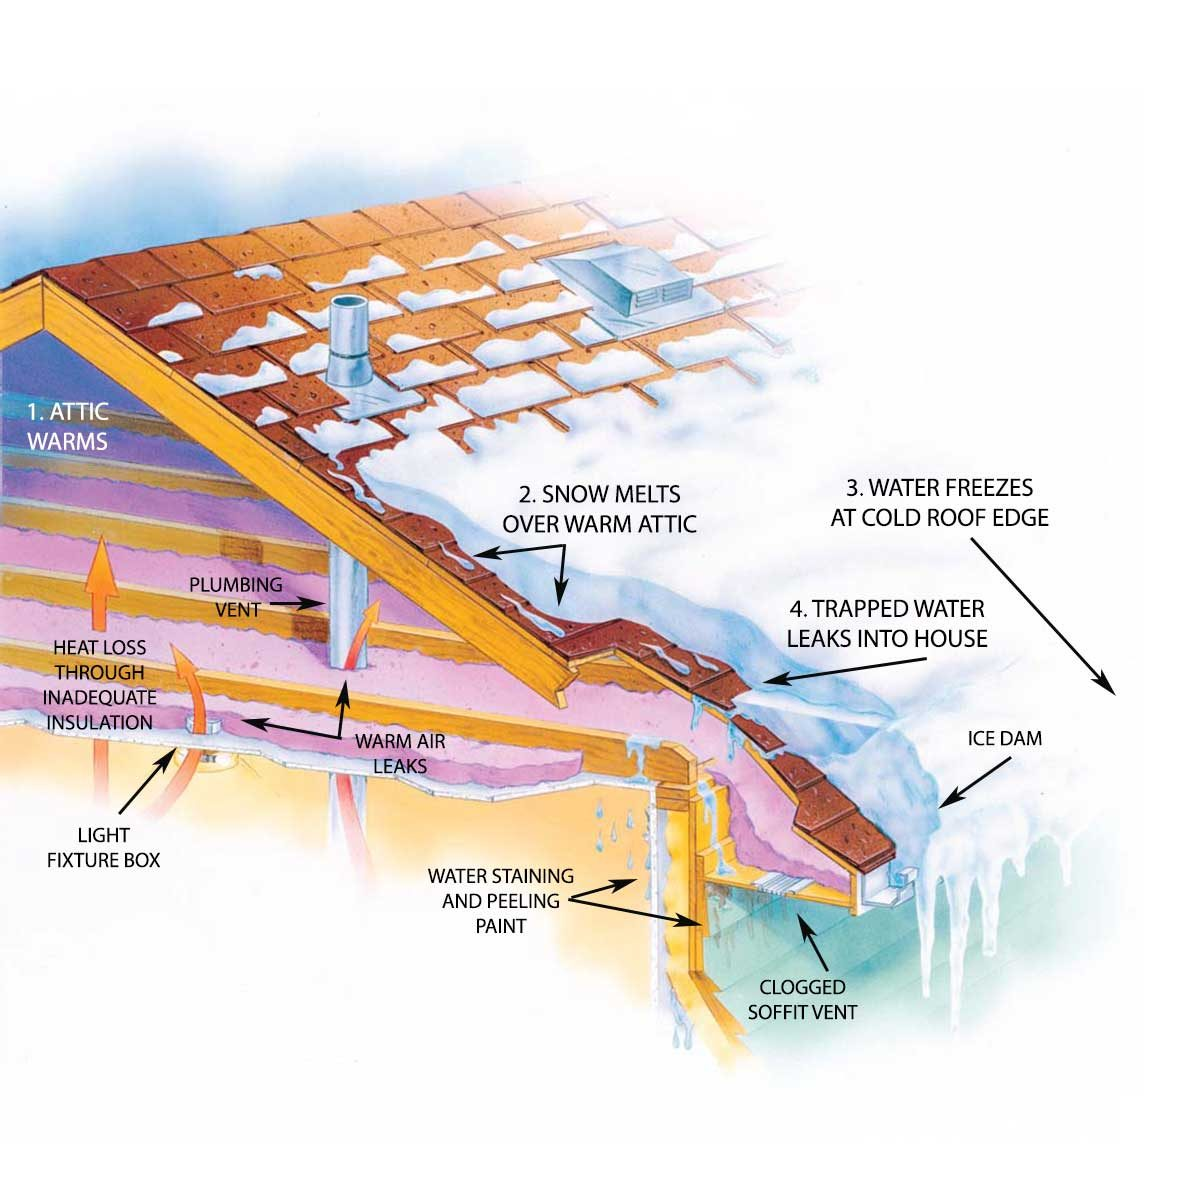 Ice dam illustration: how ice dams form